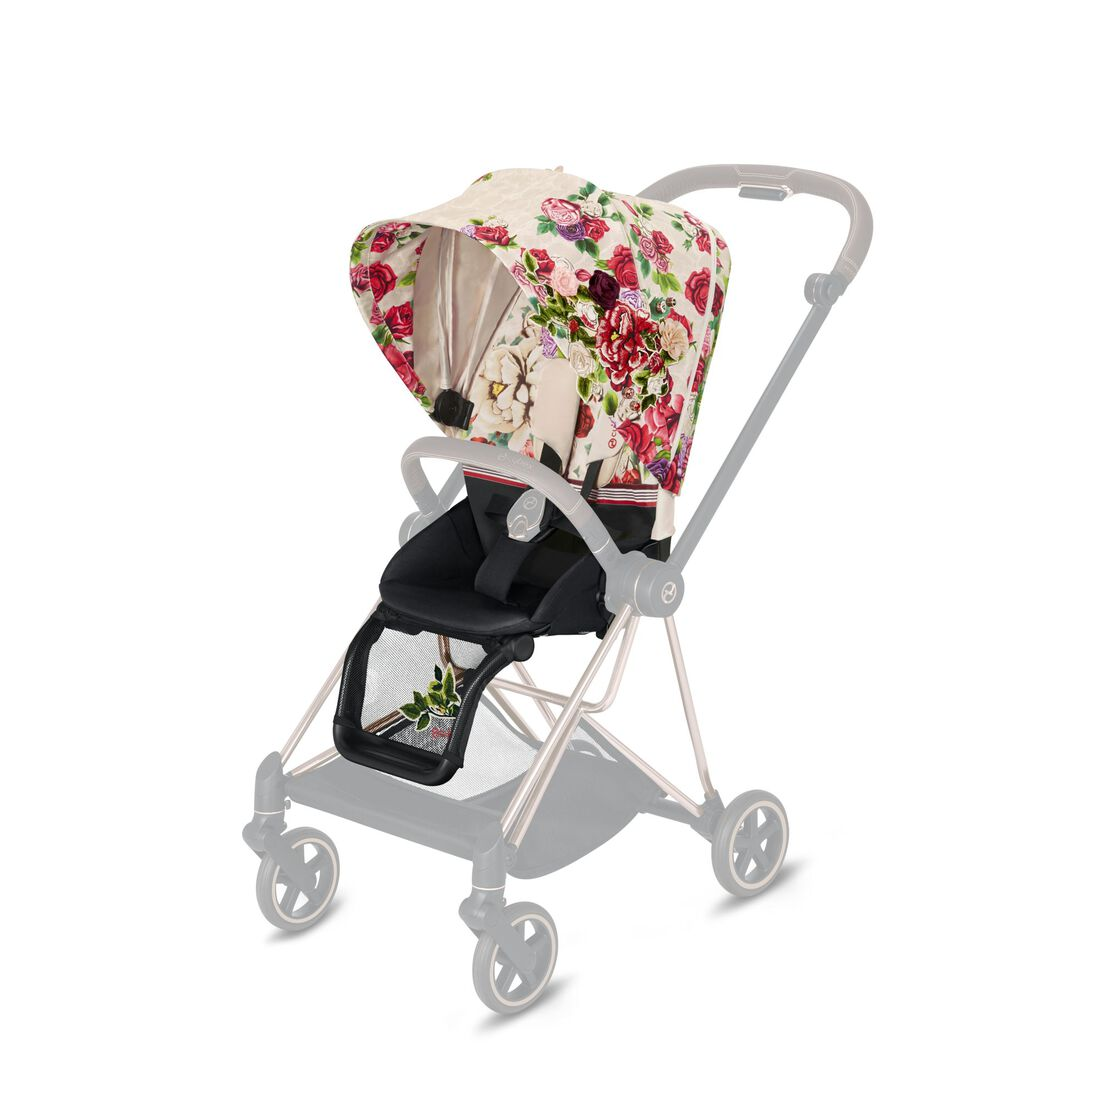 CYBEX Mios Seat Pack - Spring Blossom Light in Spring Blossom Light large image number 1